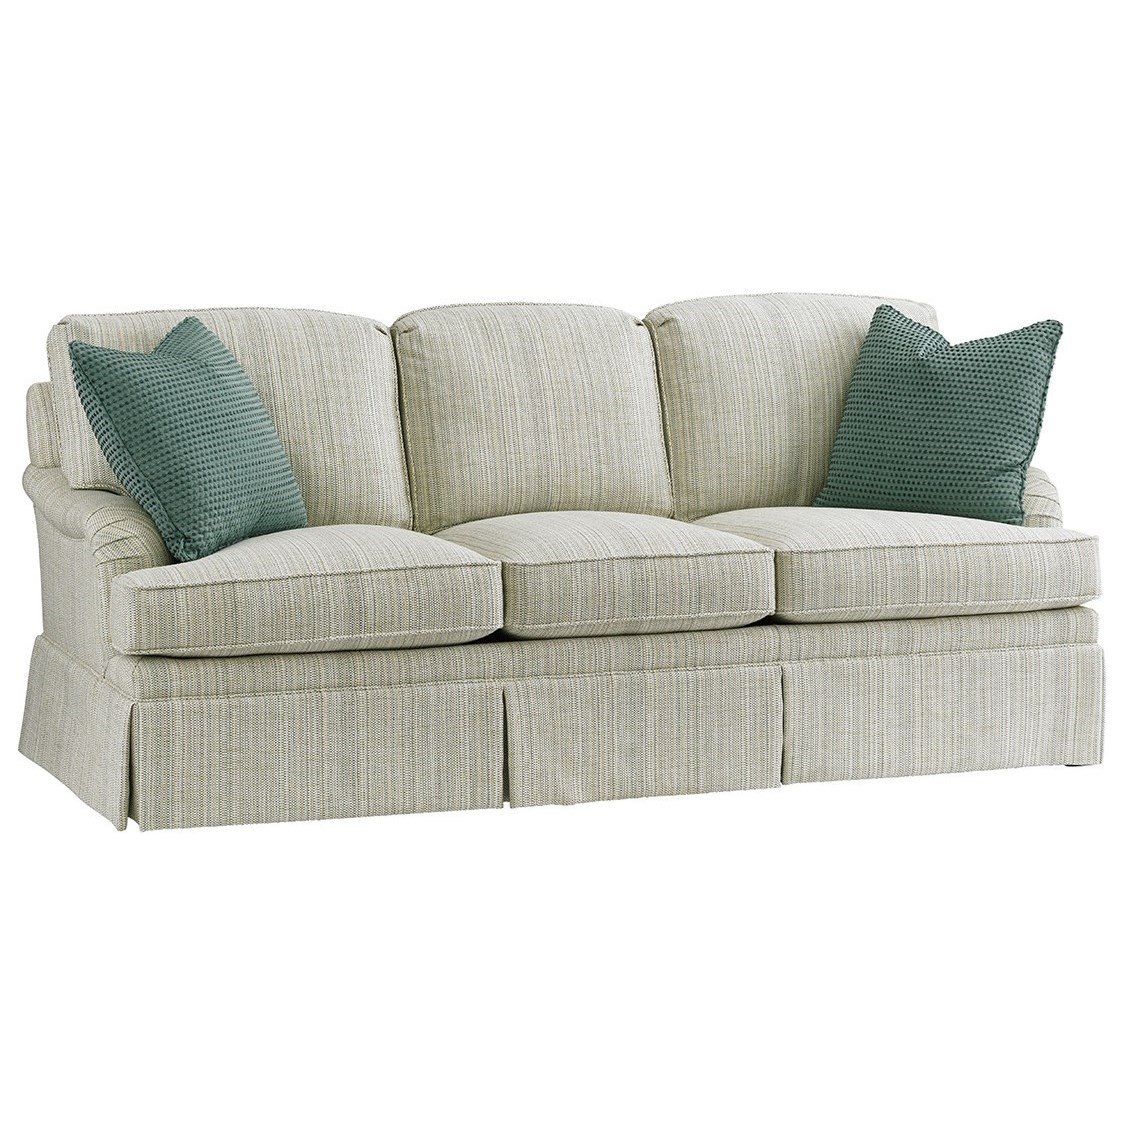 Personal Design Series Customizable McConnell Sofa  by Lexington at Johnny Janosik